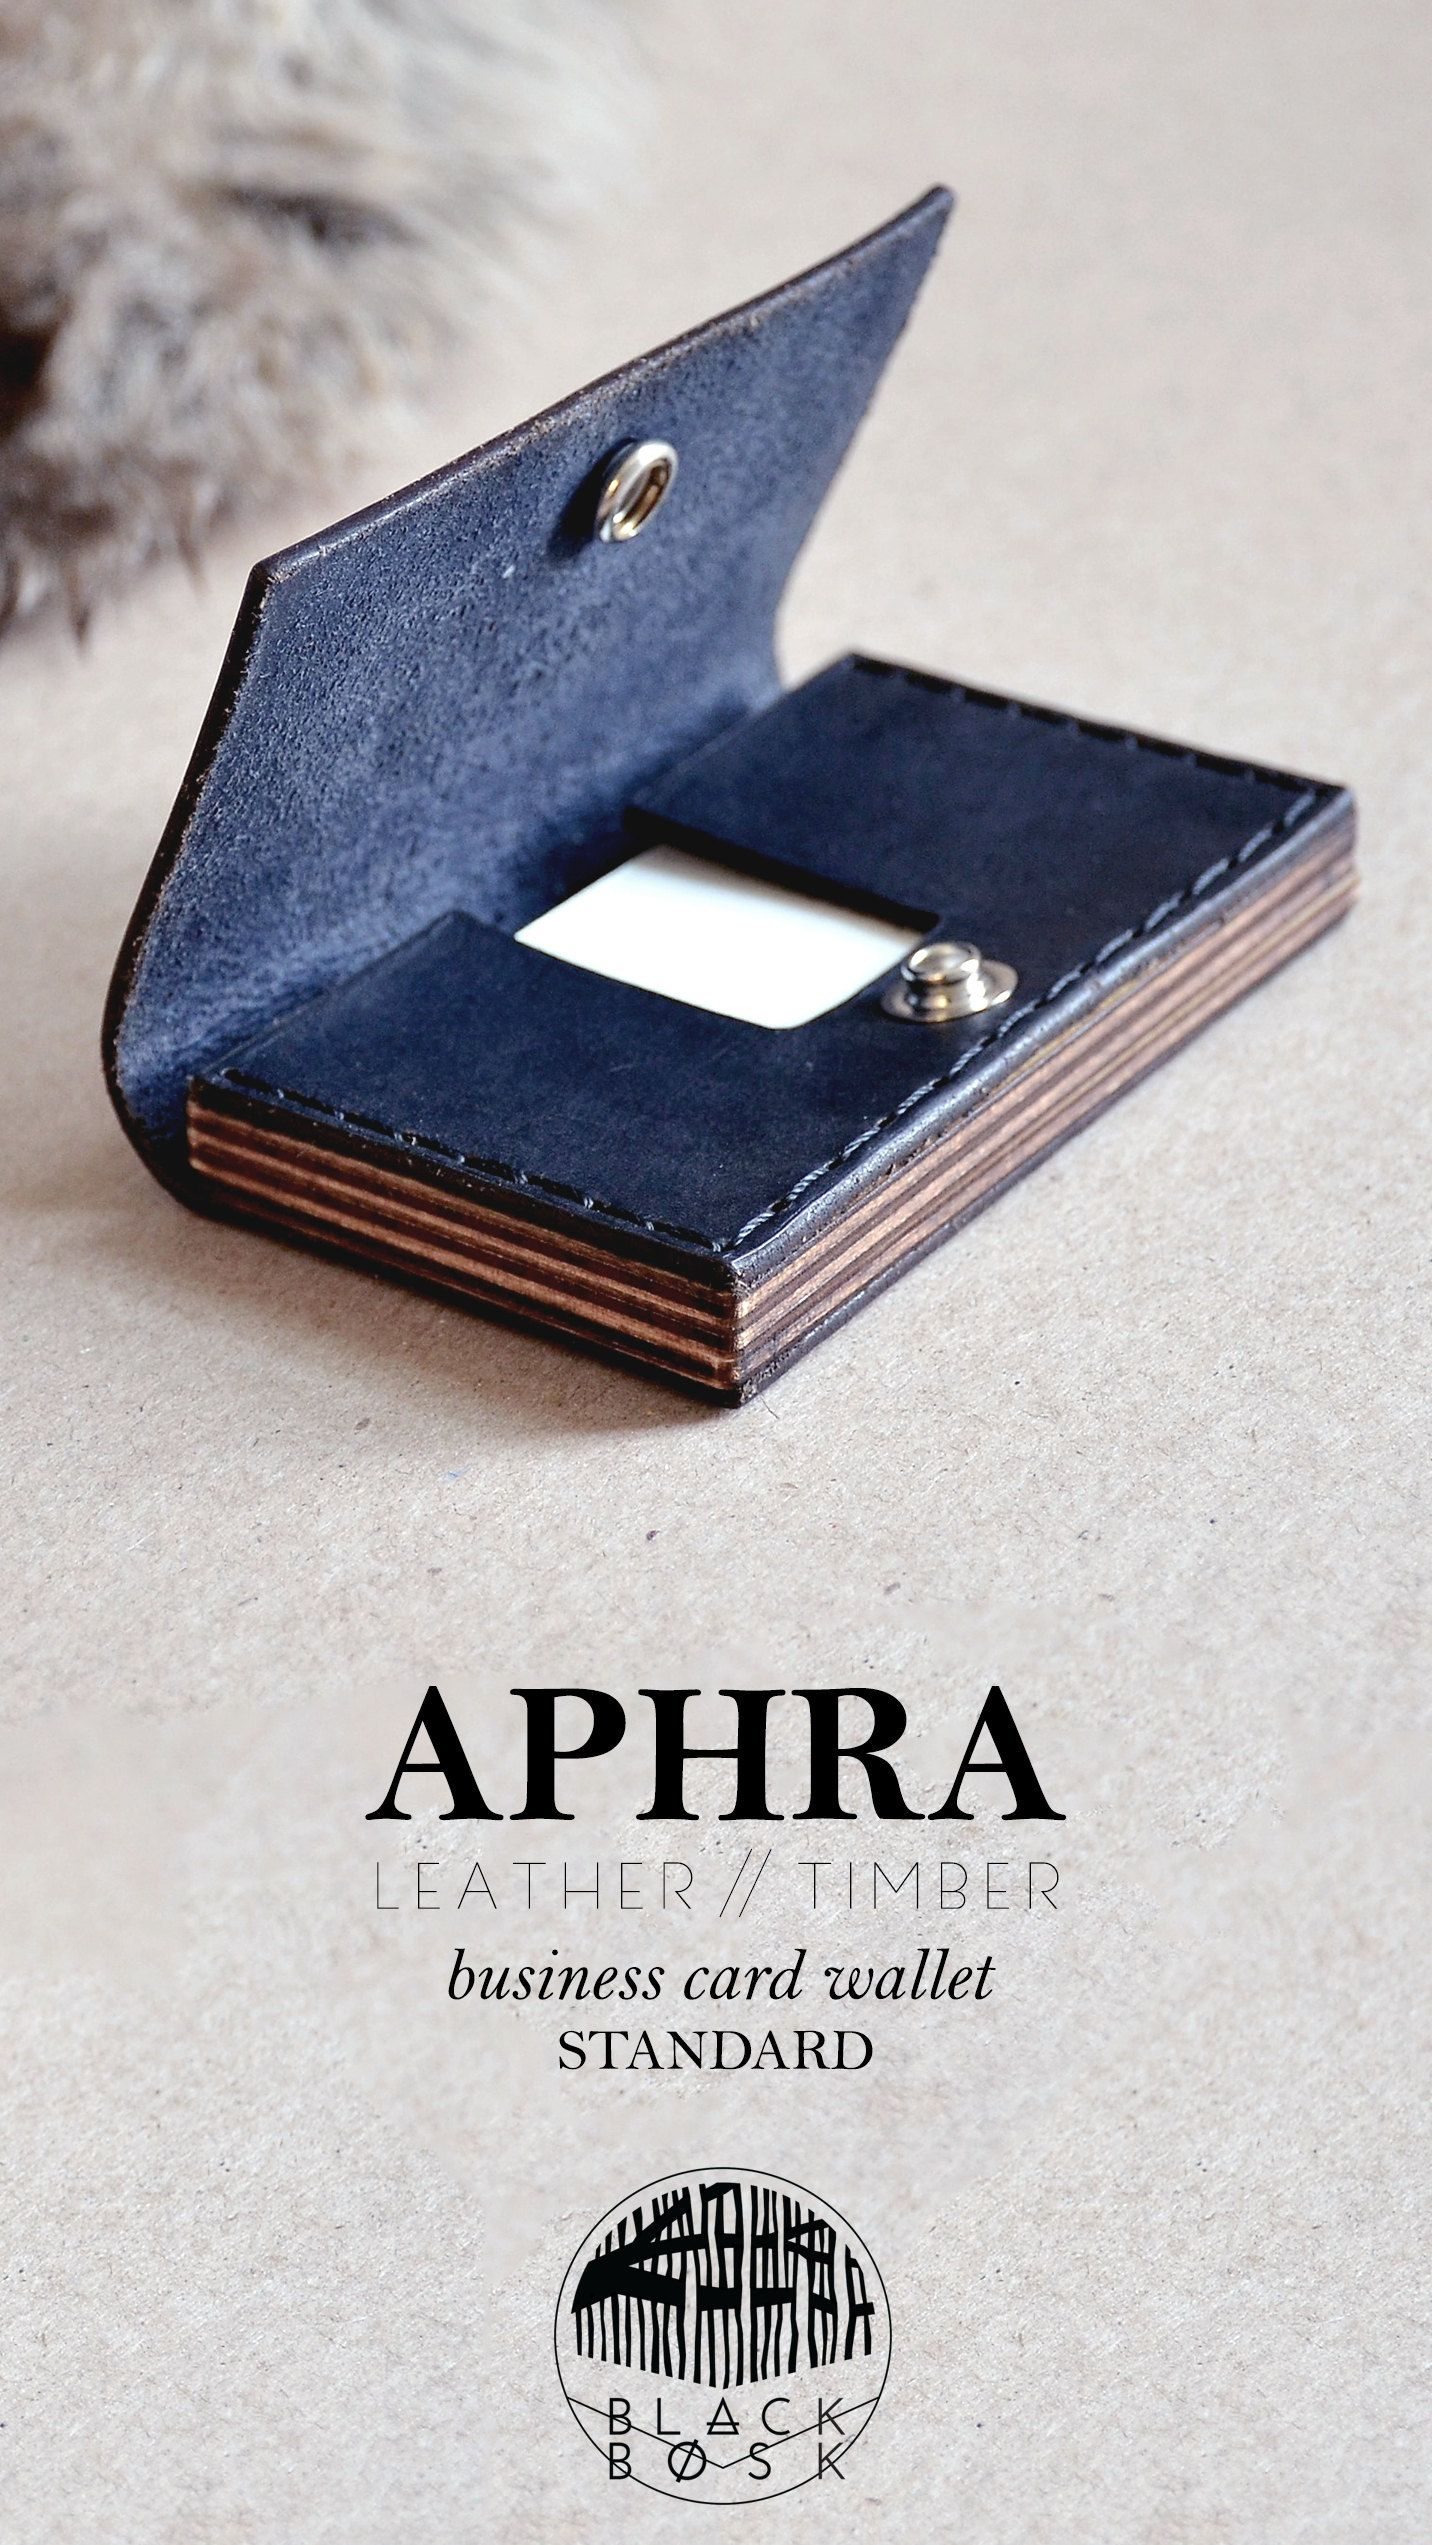 Business card caseleather wood business card wallet